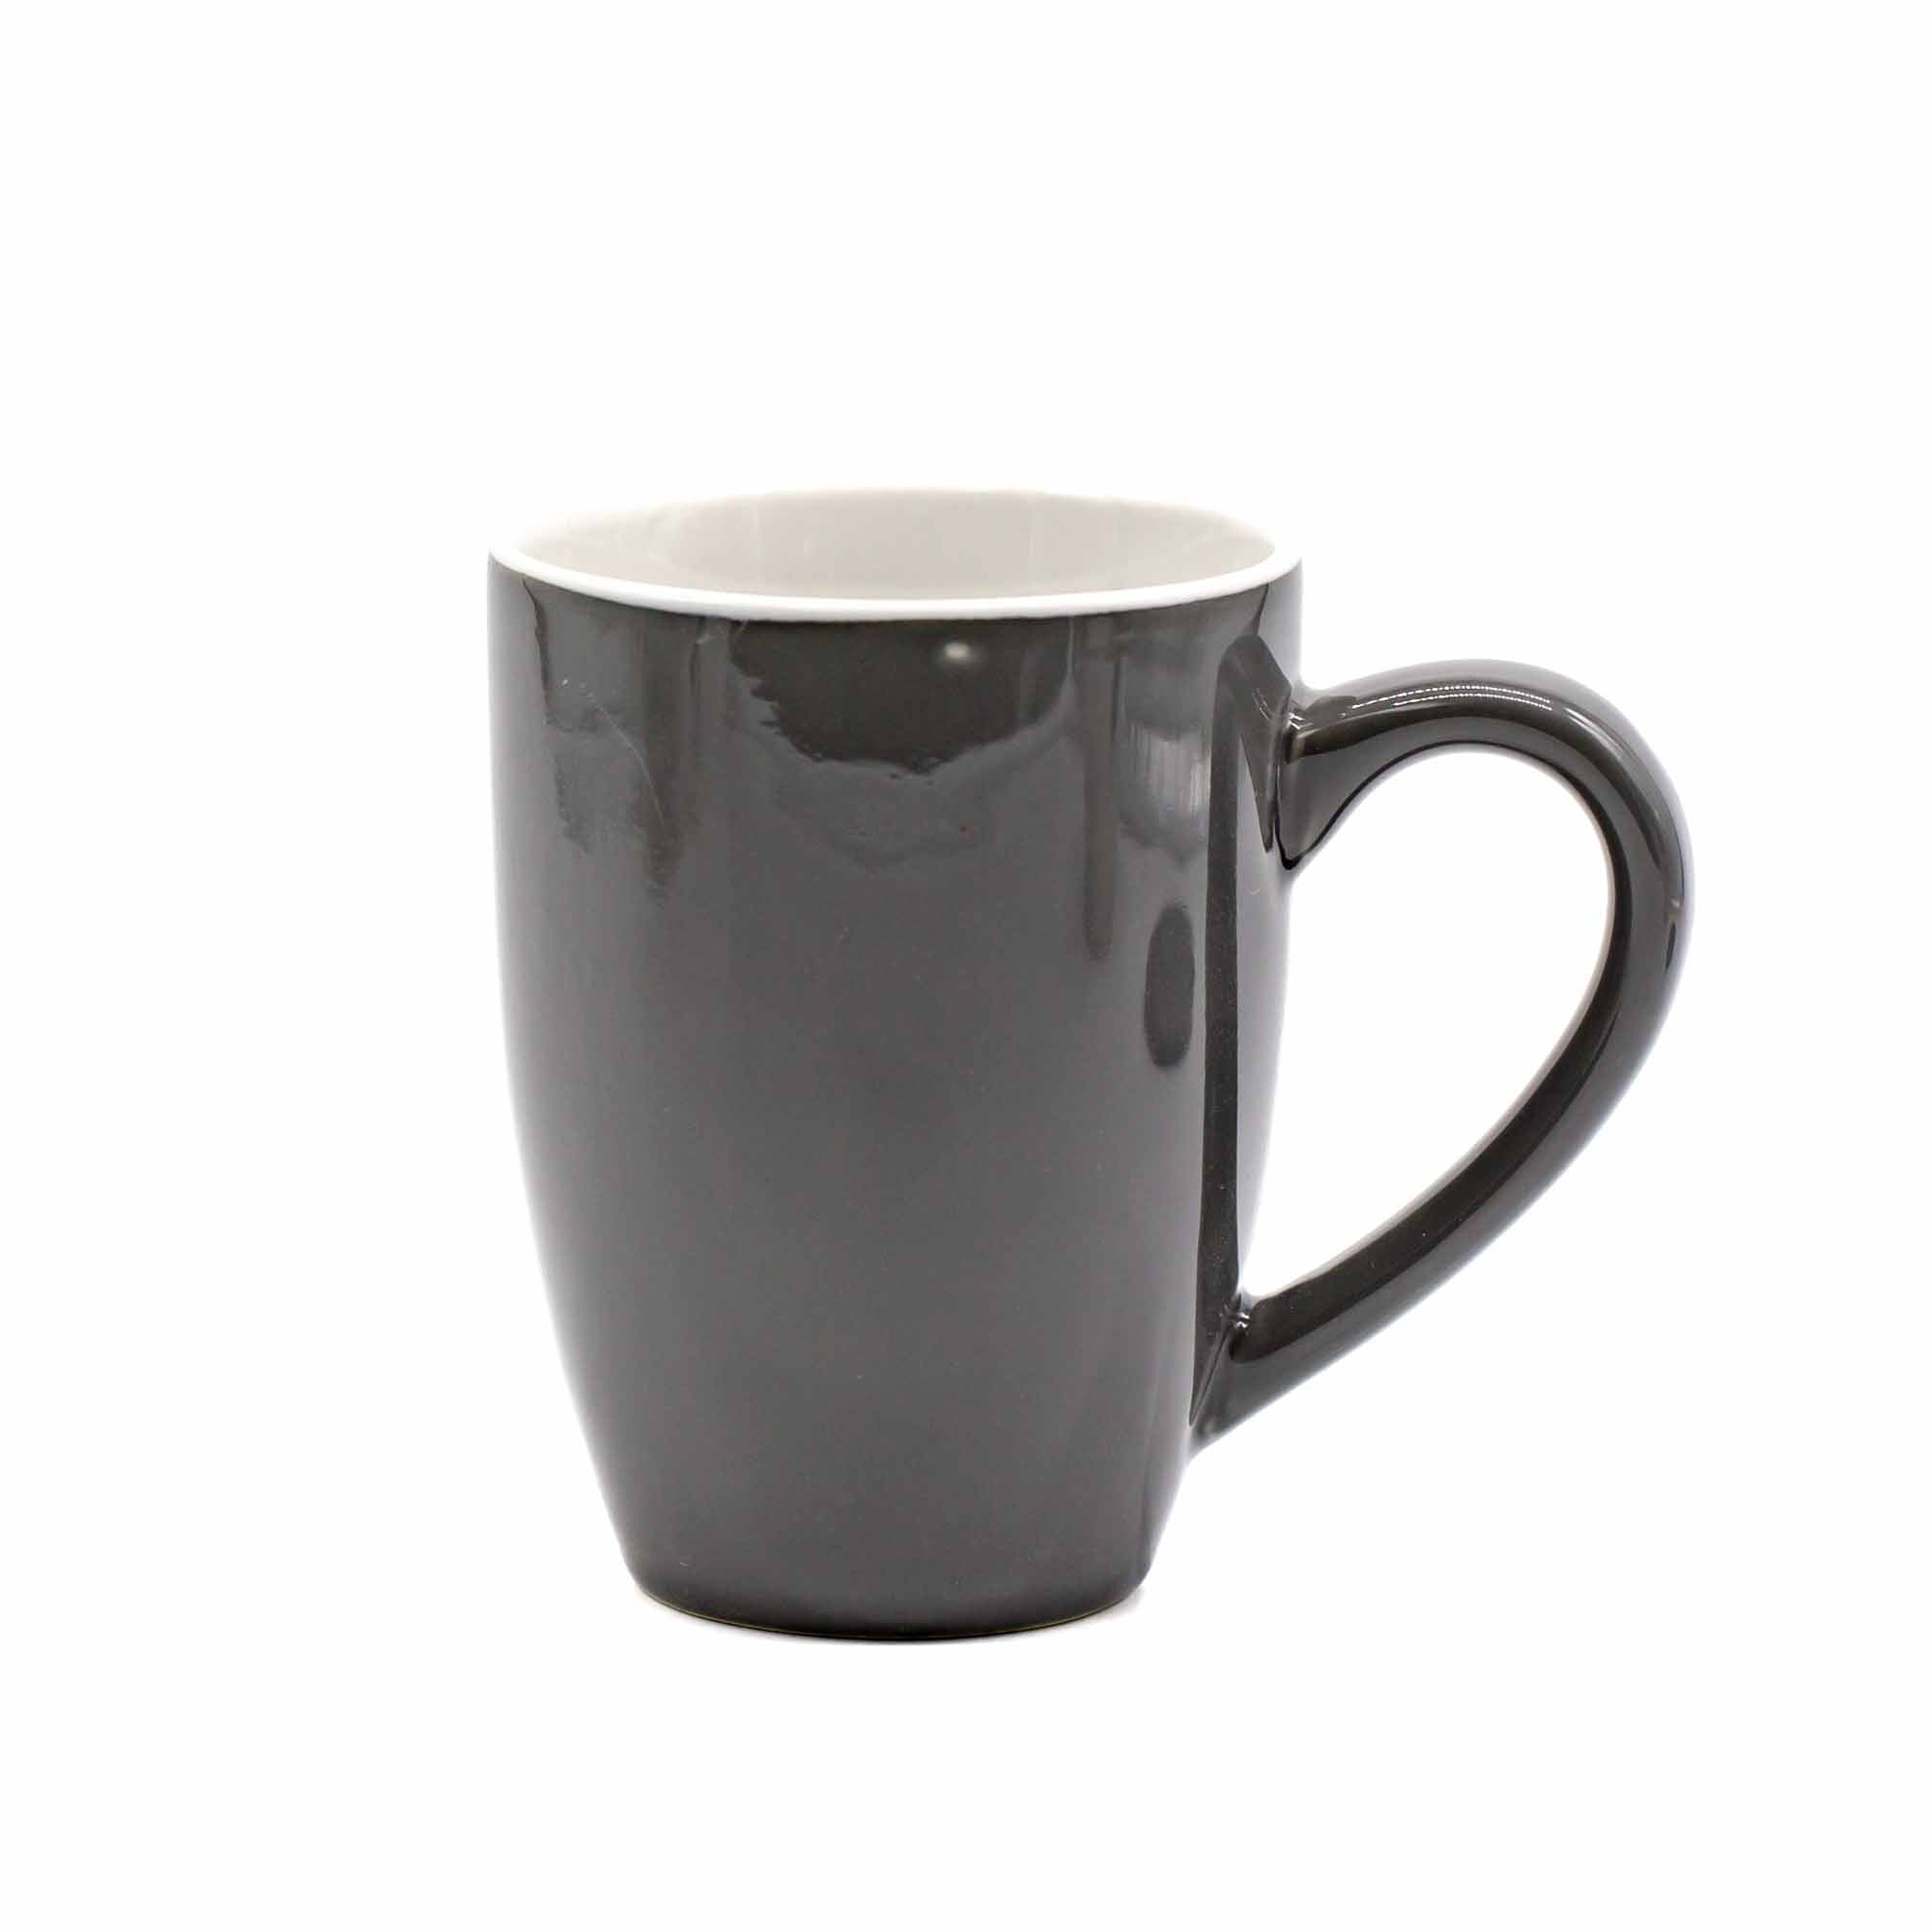 Grosche - Kassel Infuser Tea Mug - Mortise And Tenon